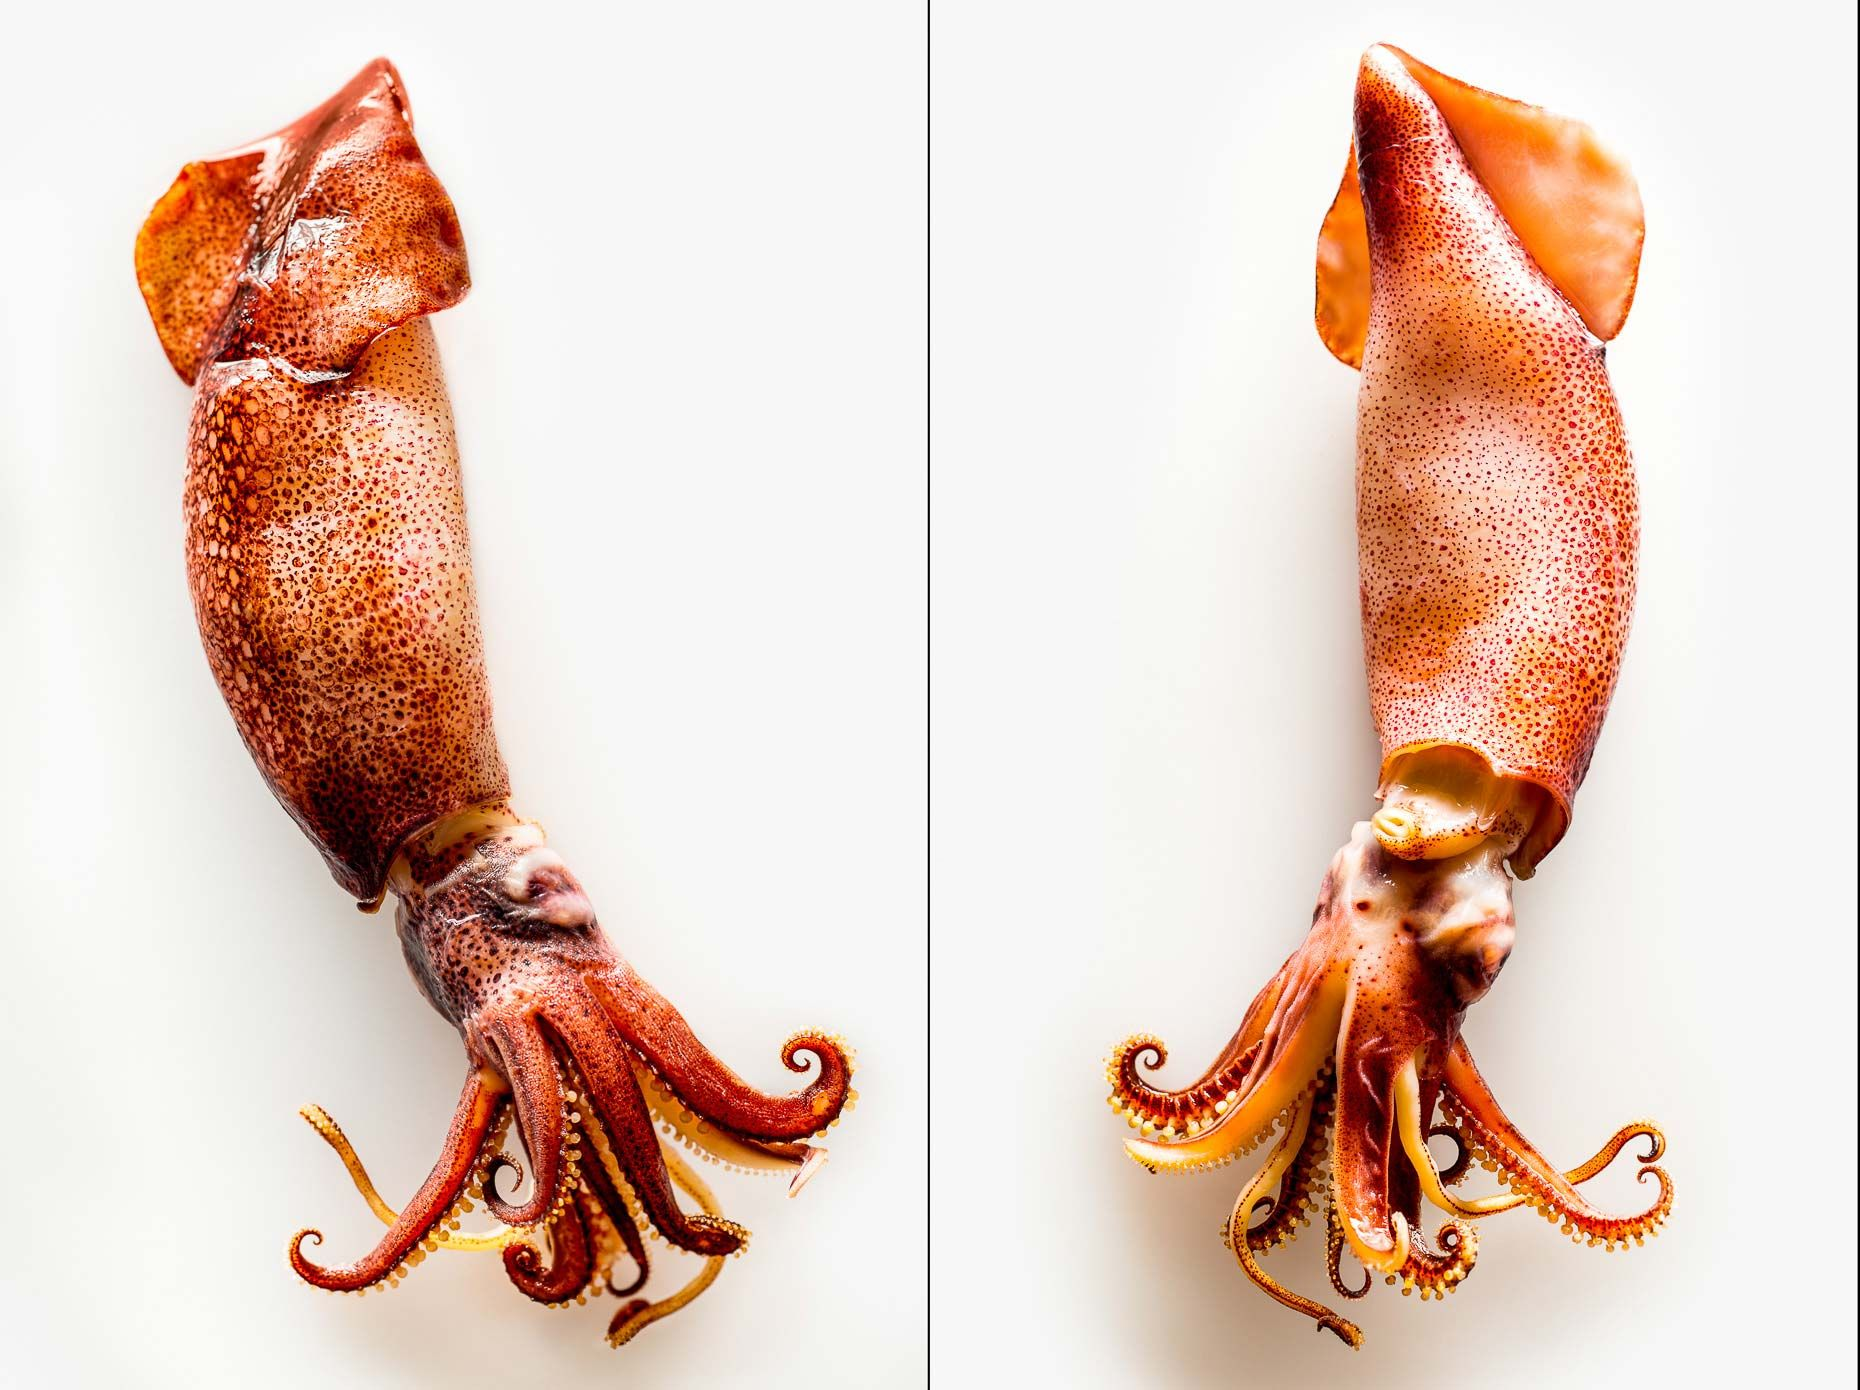 Francesco Tonelli is a food photographer in New York. His clients include Cooking Light, The New York Times, Kraft Foods and The Culinary Institute of America.